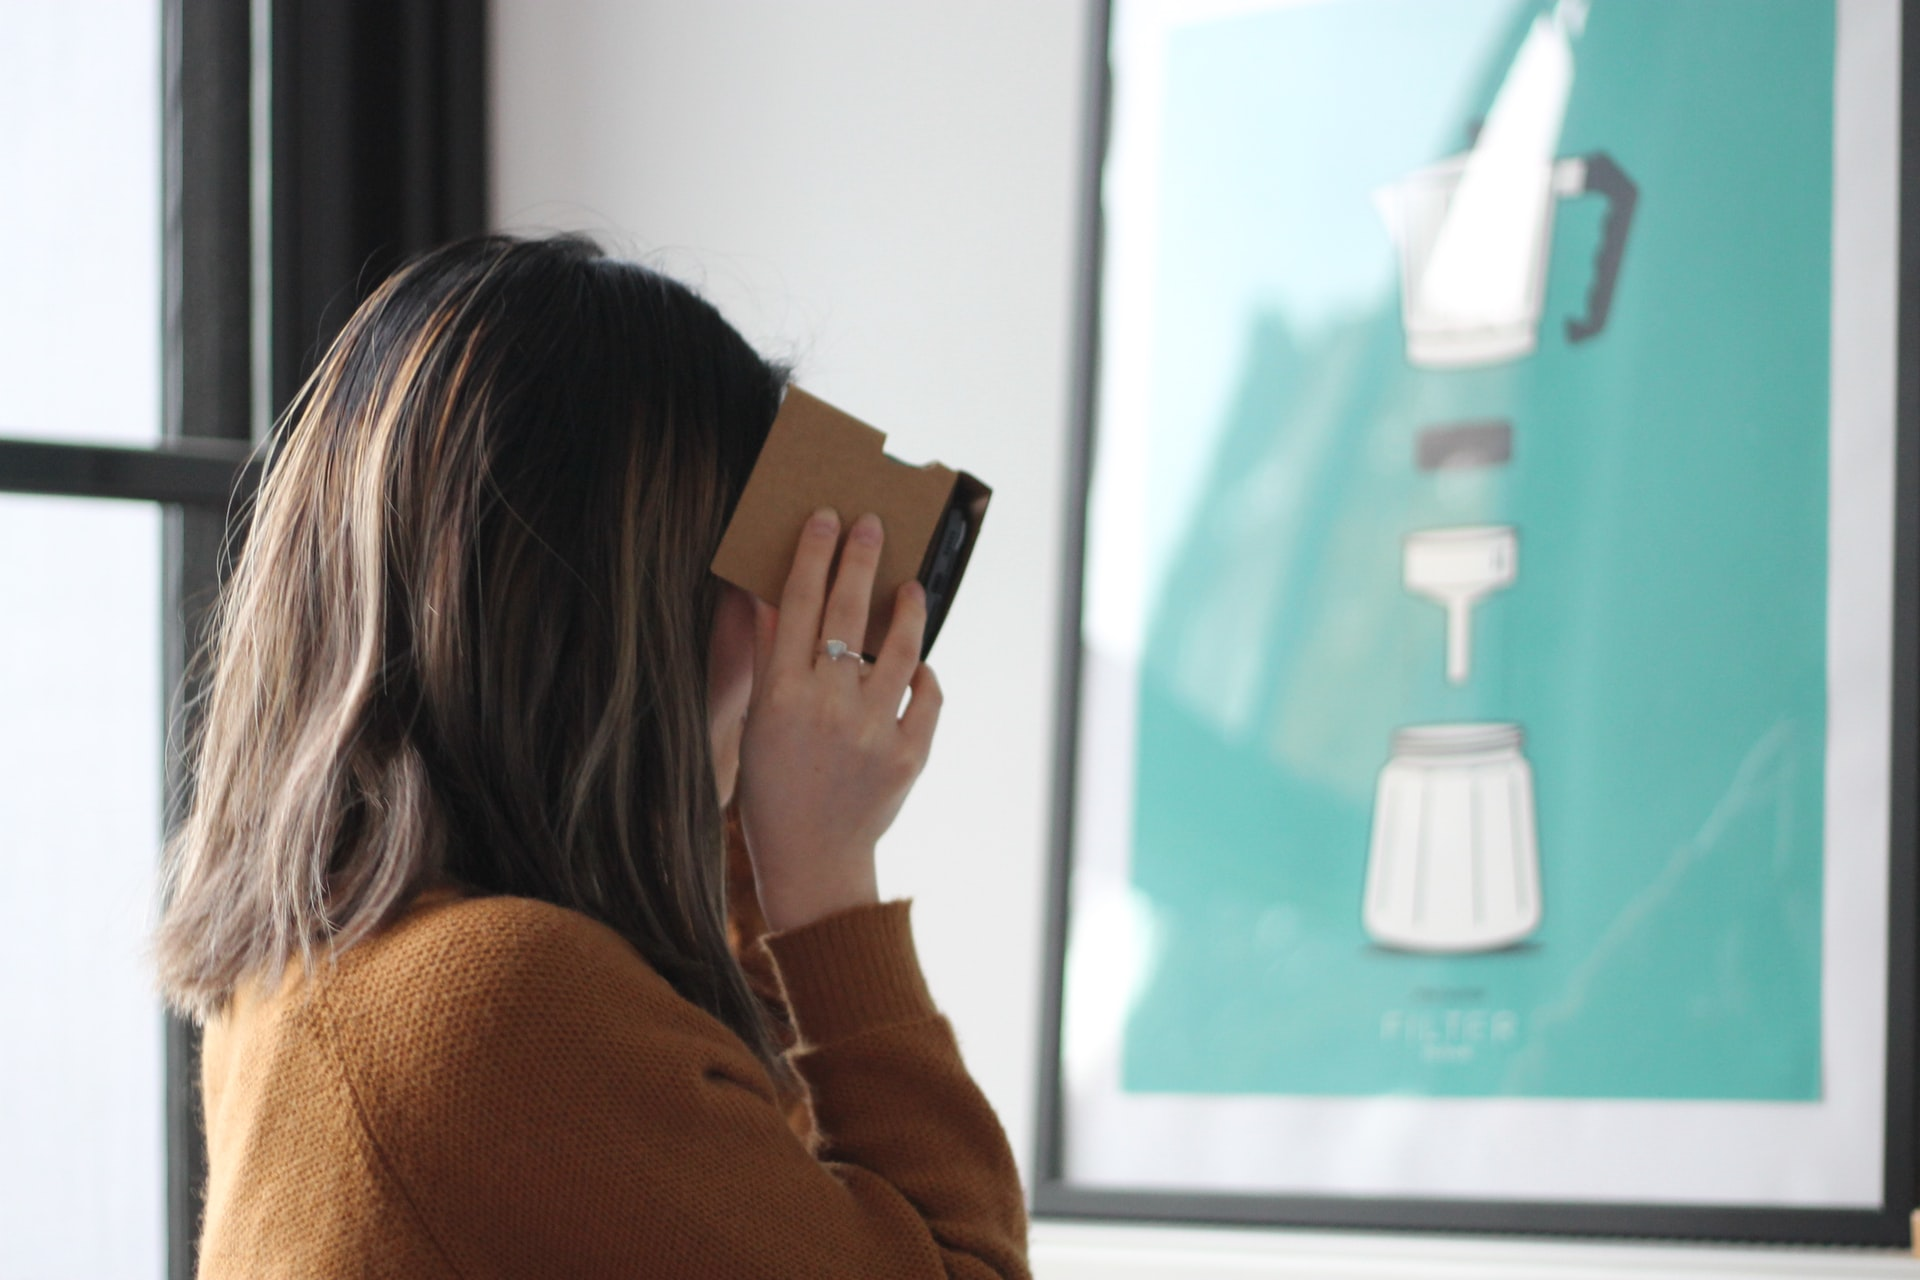 Catch a VR-To-Go Experience at the Cuesta College Art Gallery